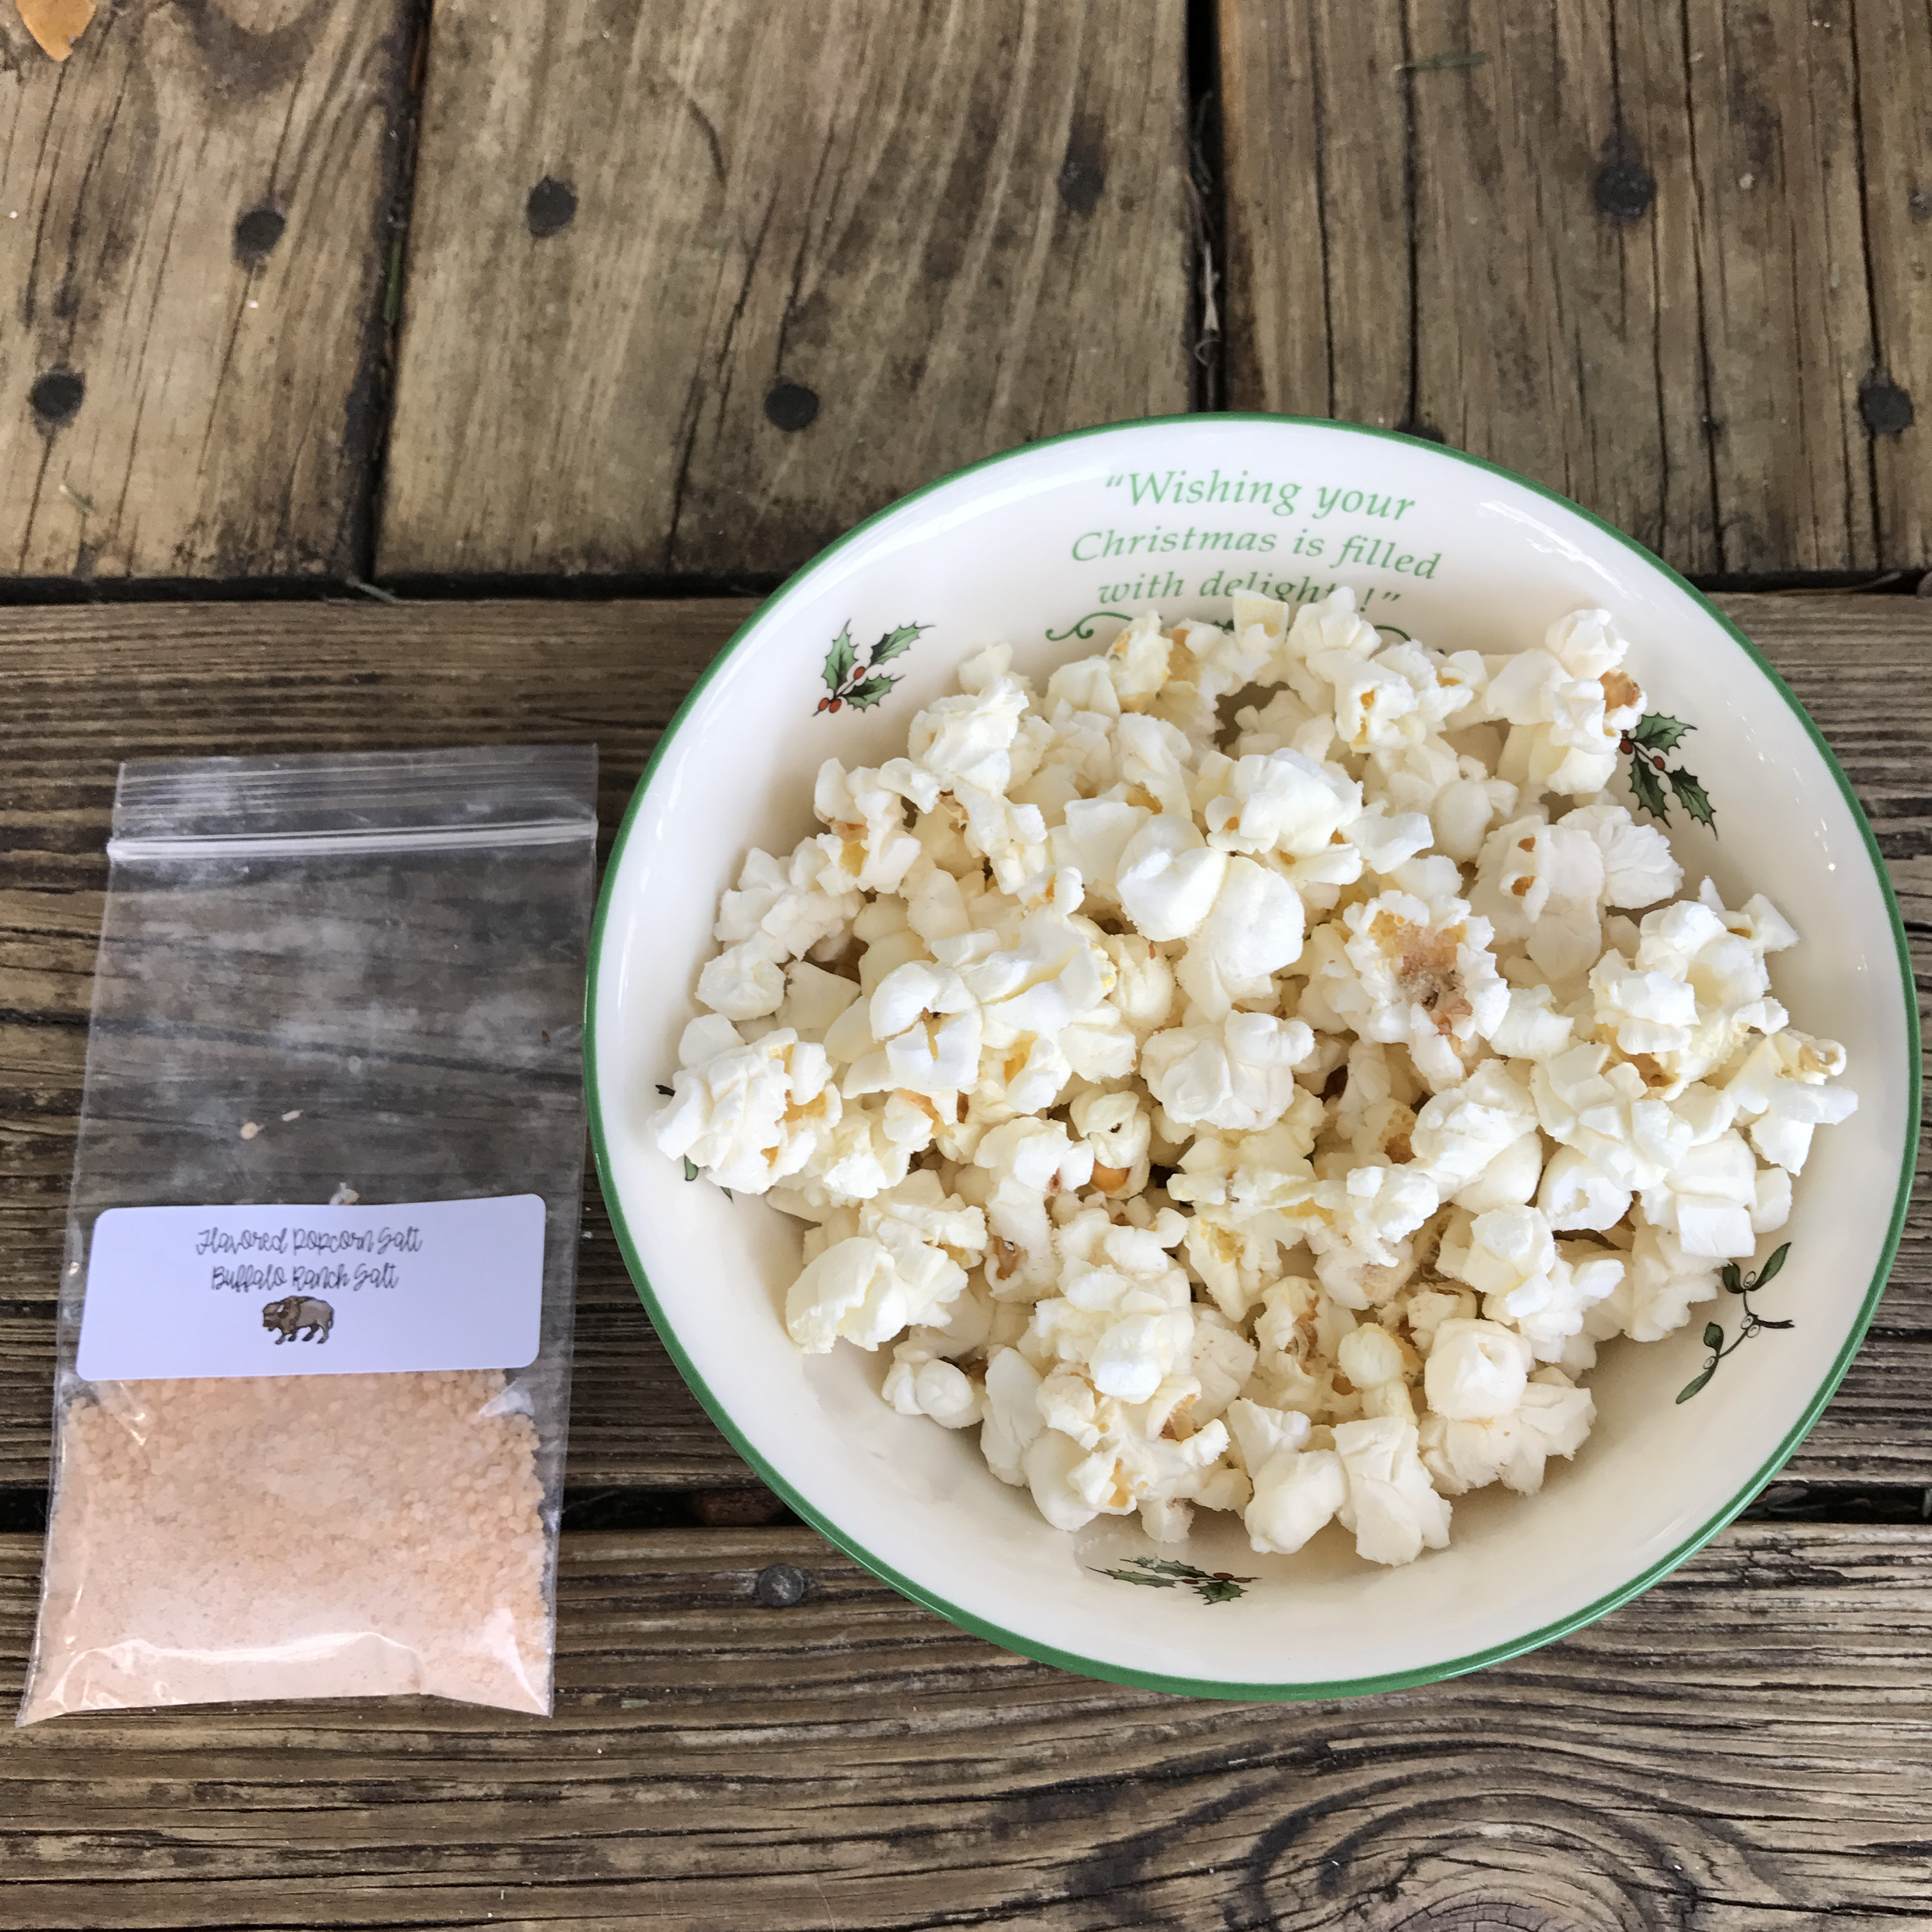 Of Course You Could Always Pop Your Own Popcorn From Scratch And Control The Salt Amounts That Way